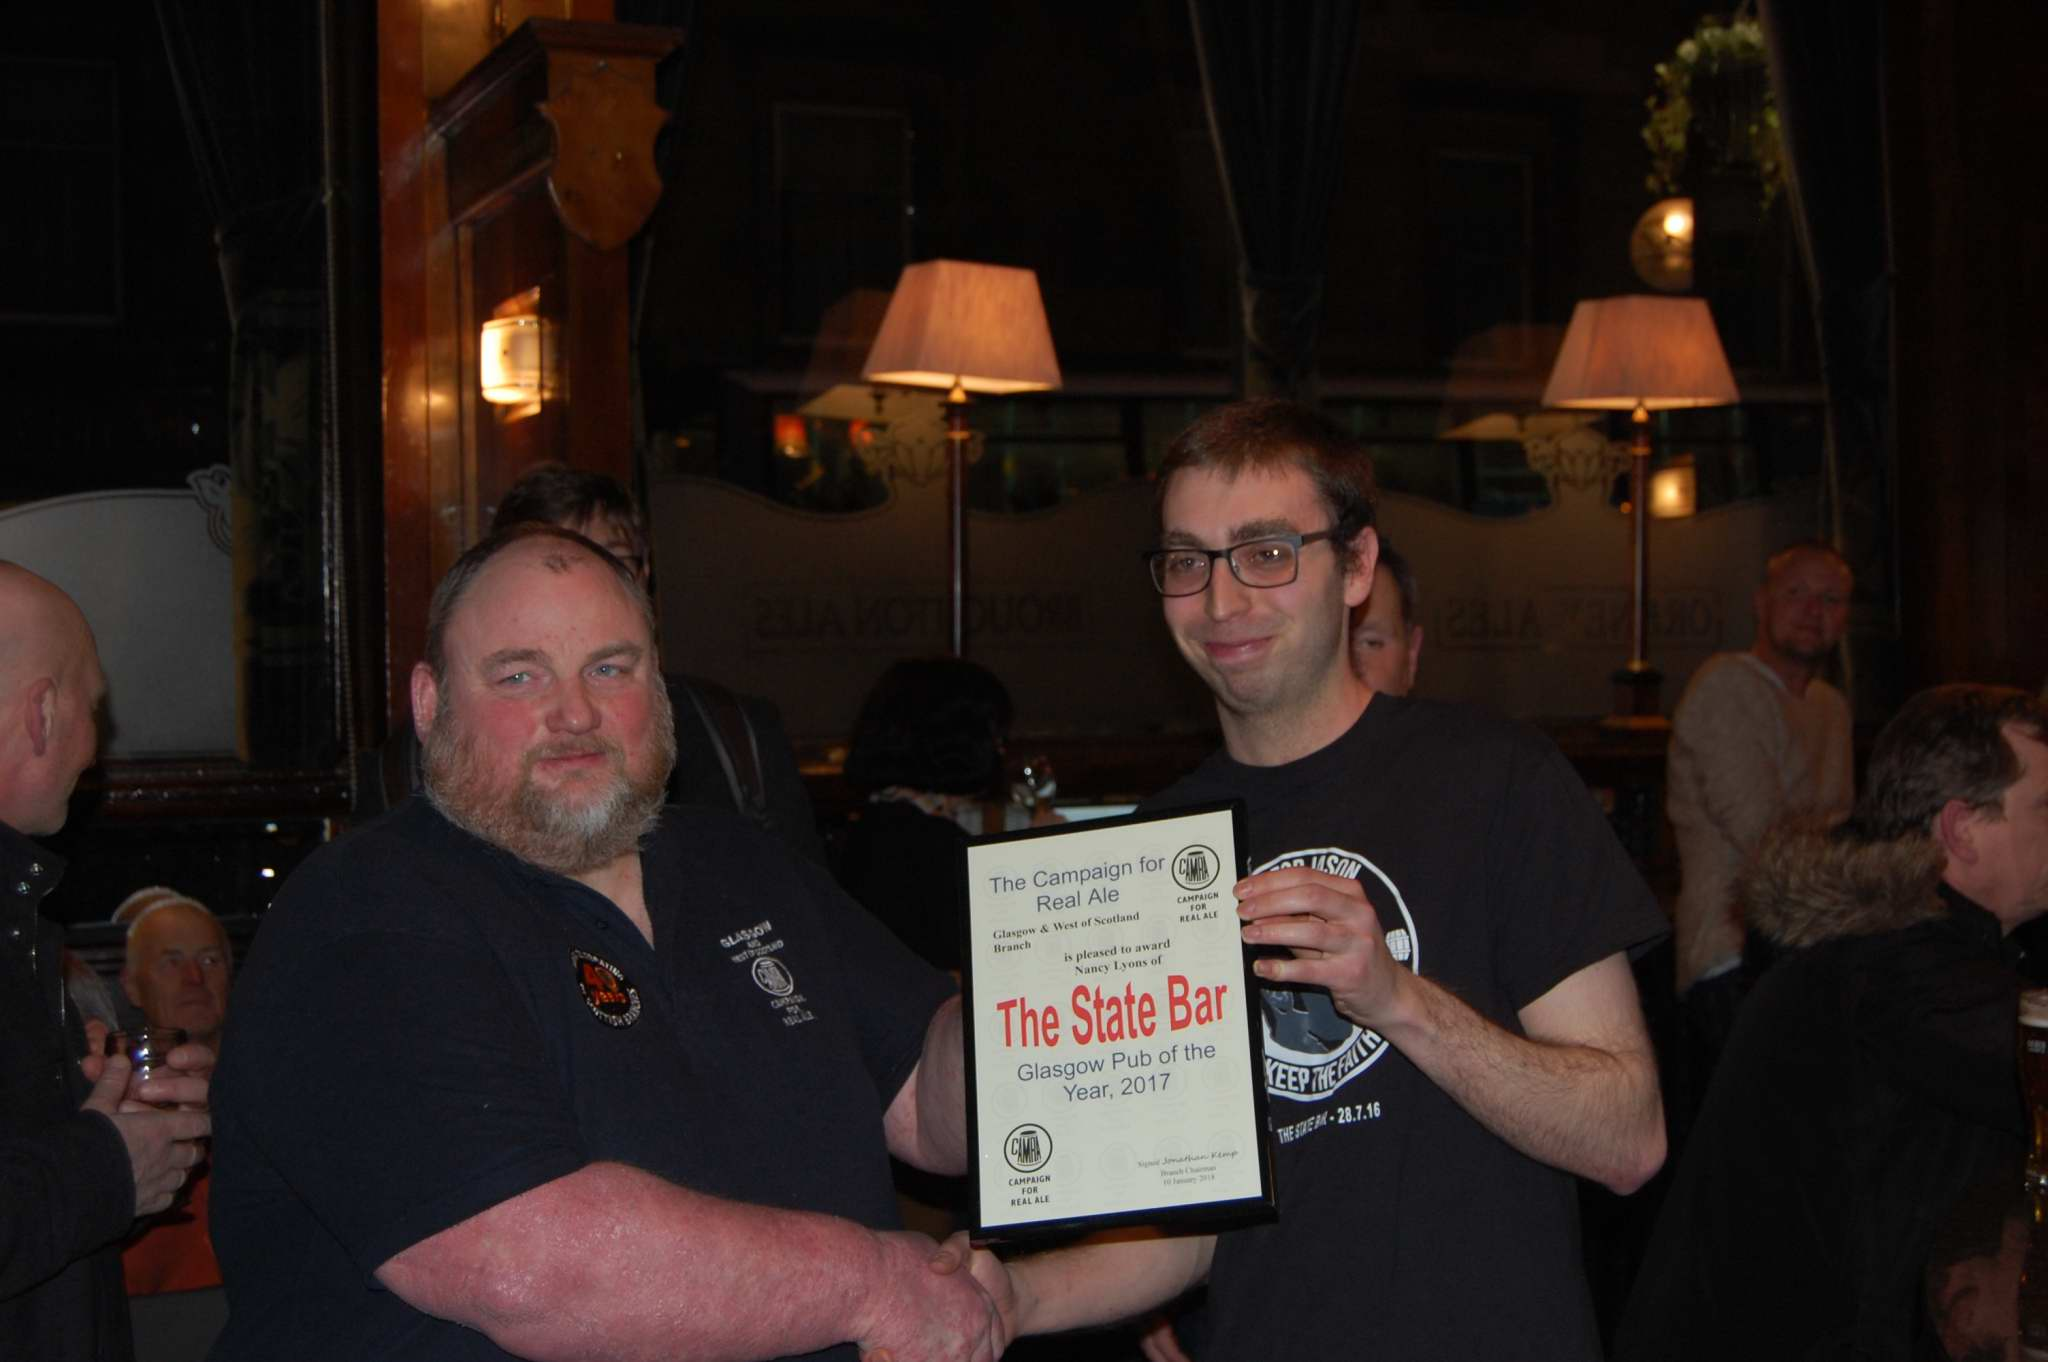 Glasgow Pub of the Year 2017